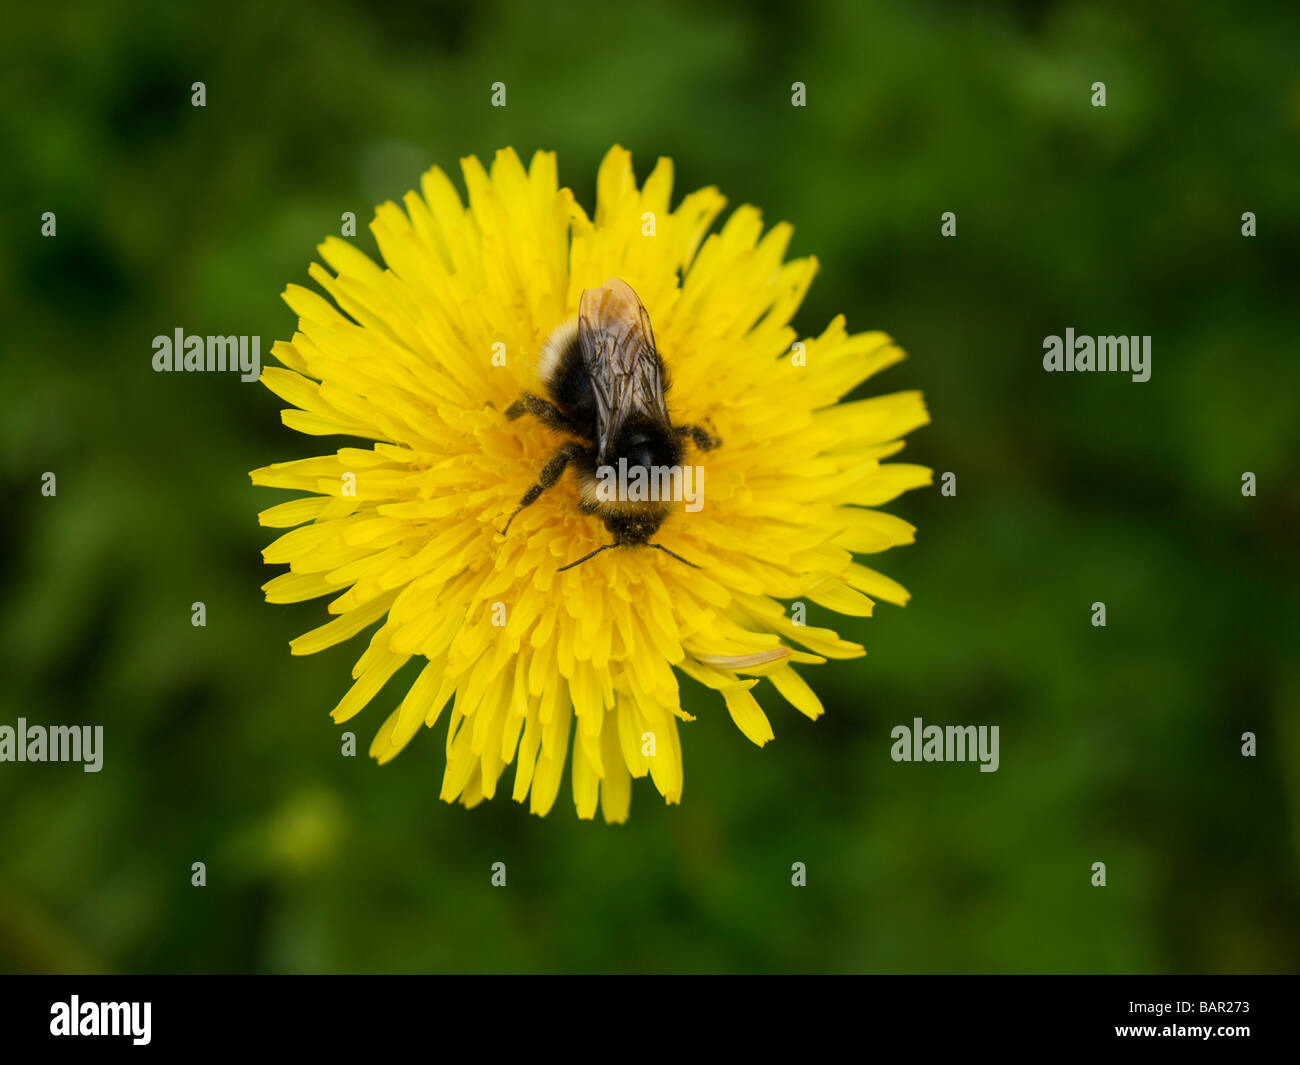 Bee sitting on dandelion flower top view pollen visible Oteppe Belgium - Stock Image